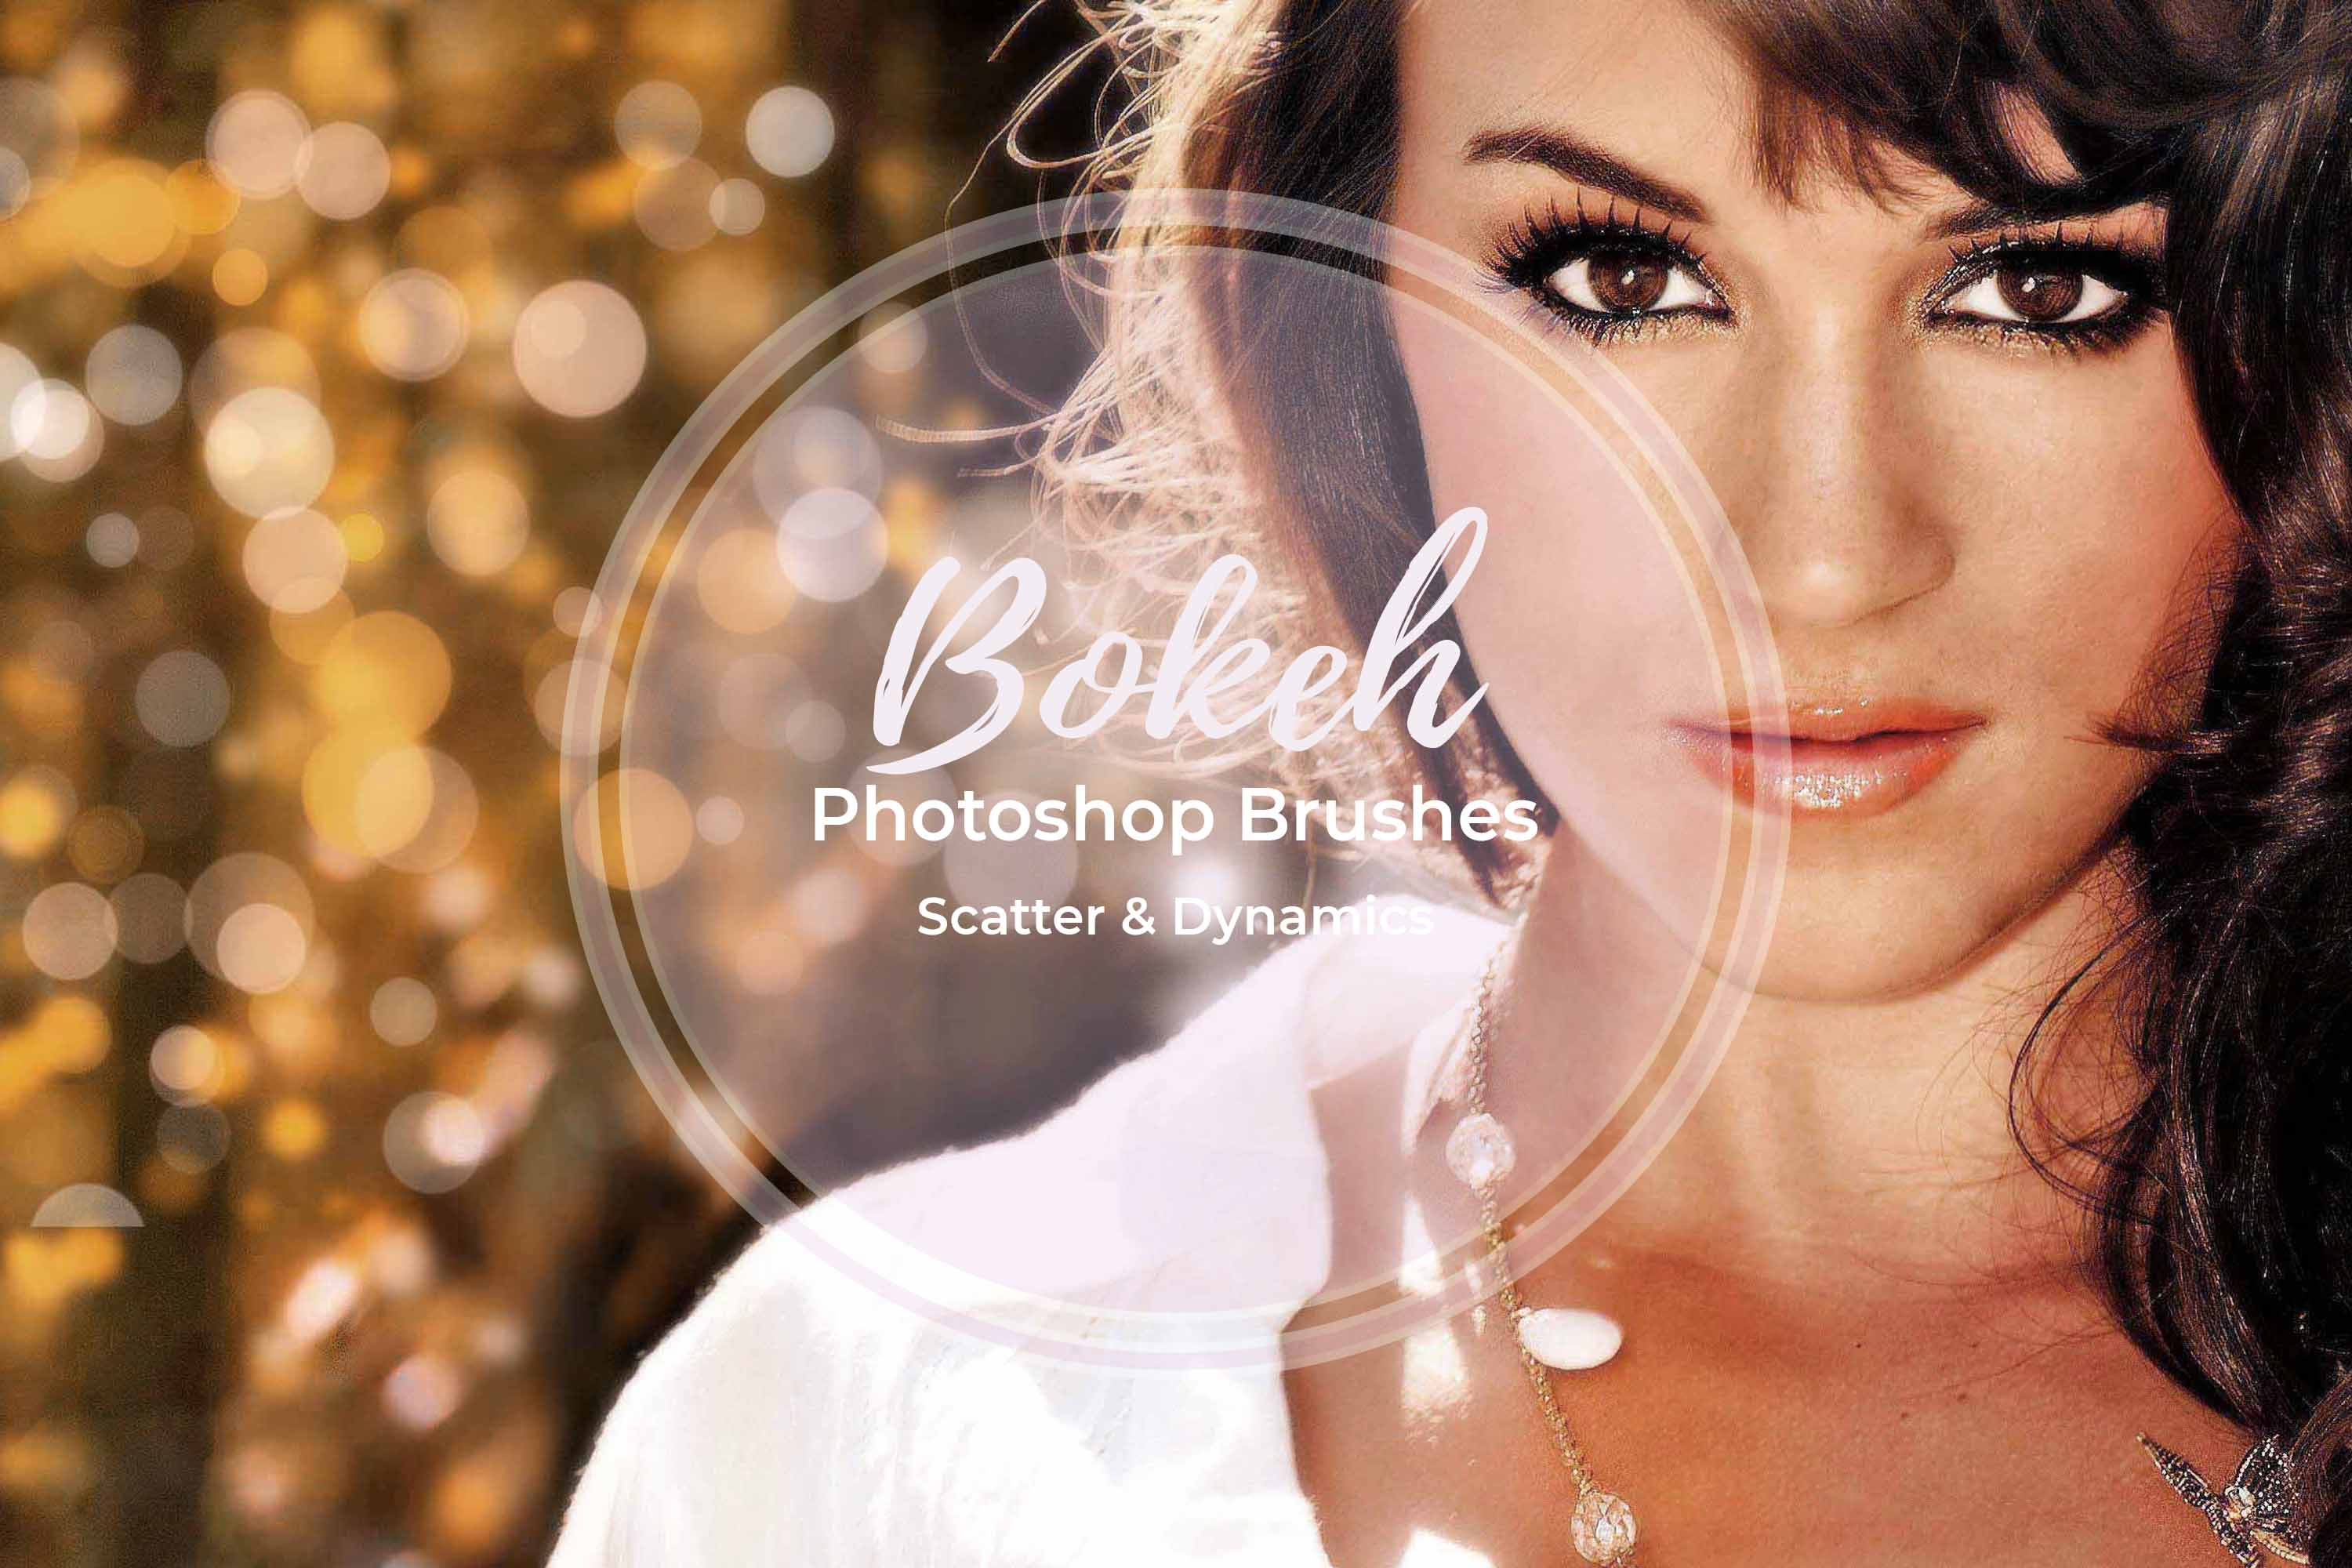 15 Bokeh Photoshop Brushes abr. - Scatter & Dynamics example image 7